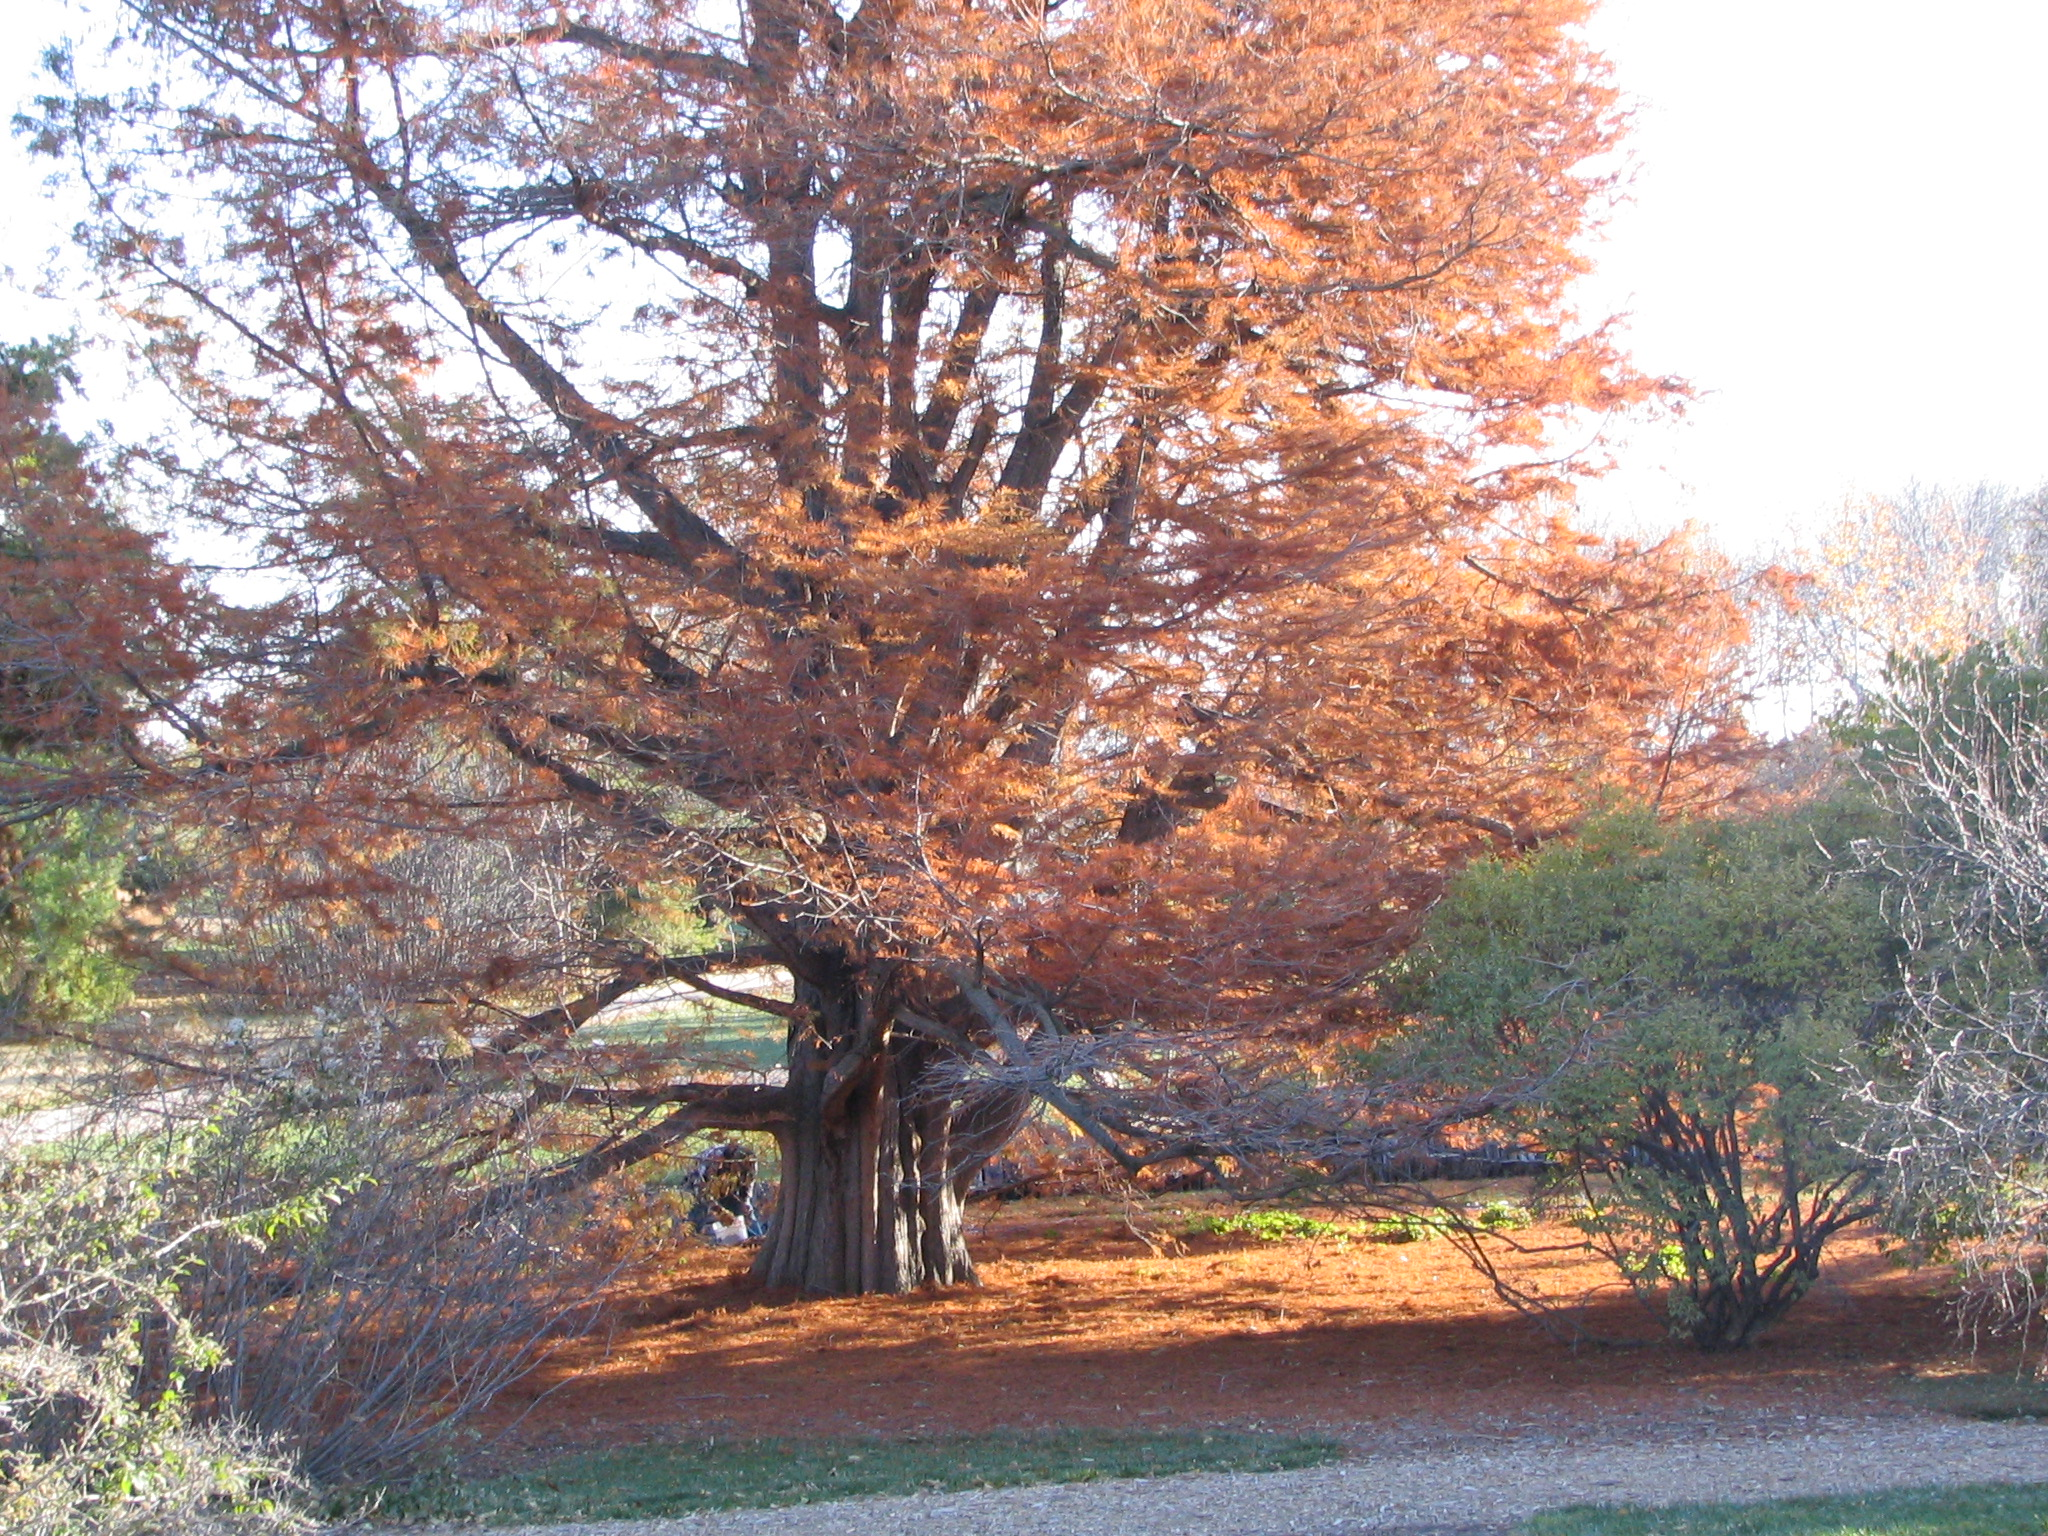 Photograph of the tree shedding its needles in the fall.